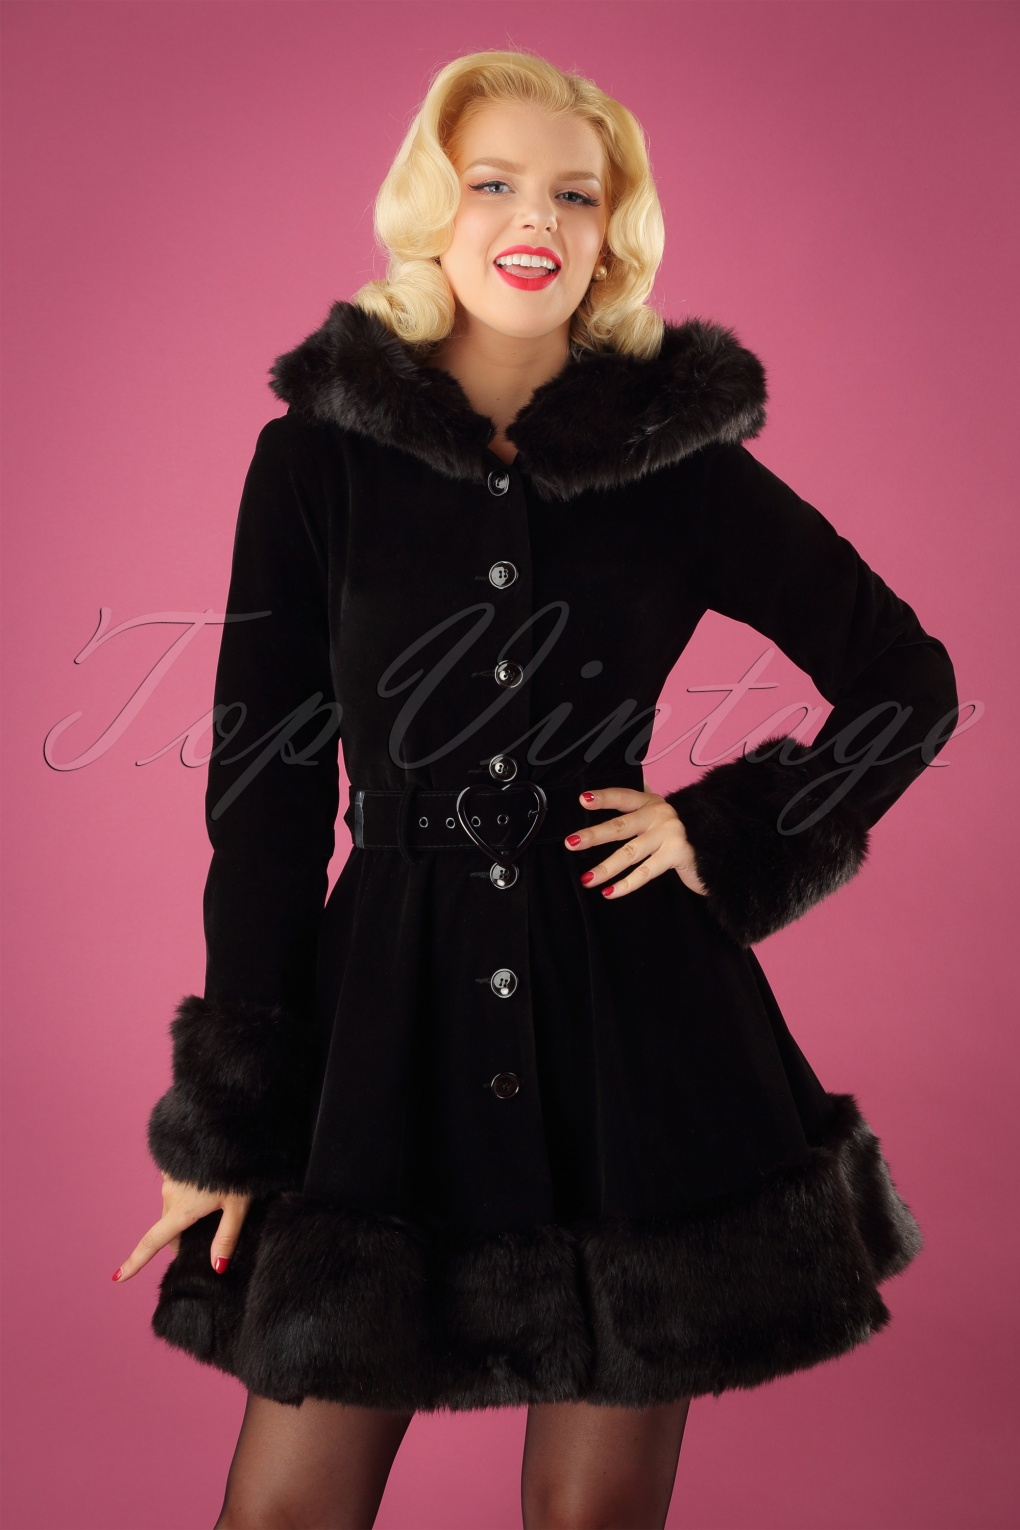 1950s Jackets, Coats, Bolero | Swing, Pin Up, Rockabilly 50s Laila Velvet Hooded Coat in Black £102.59 AT vintagedancer.com